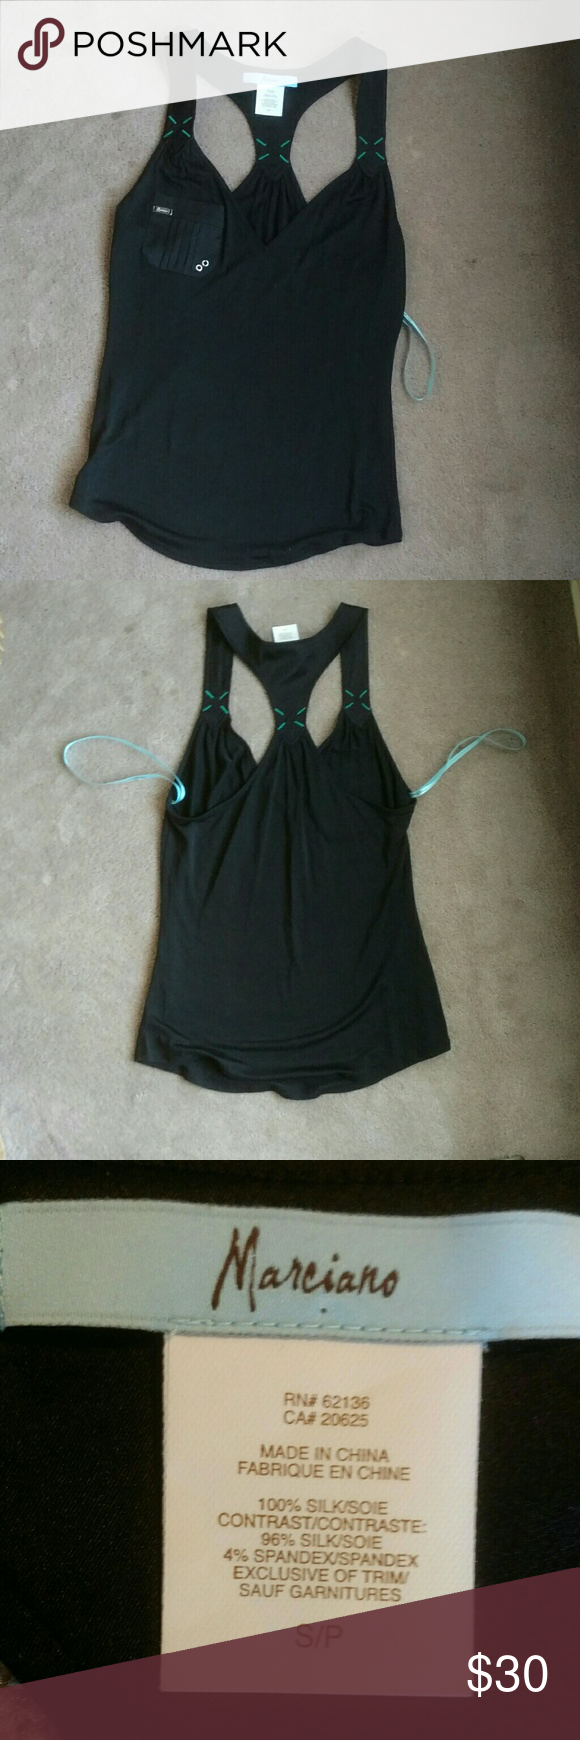 Marciano black tank blouse XS Marciano black tank with teal stitching. Silk material on the shoulders and pocket. Worn once and in excellent condition. NO TRADES. Marciano Tops Tank Tops